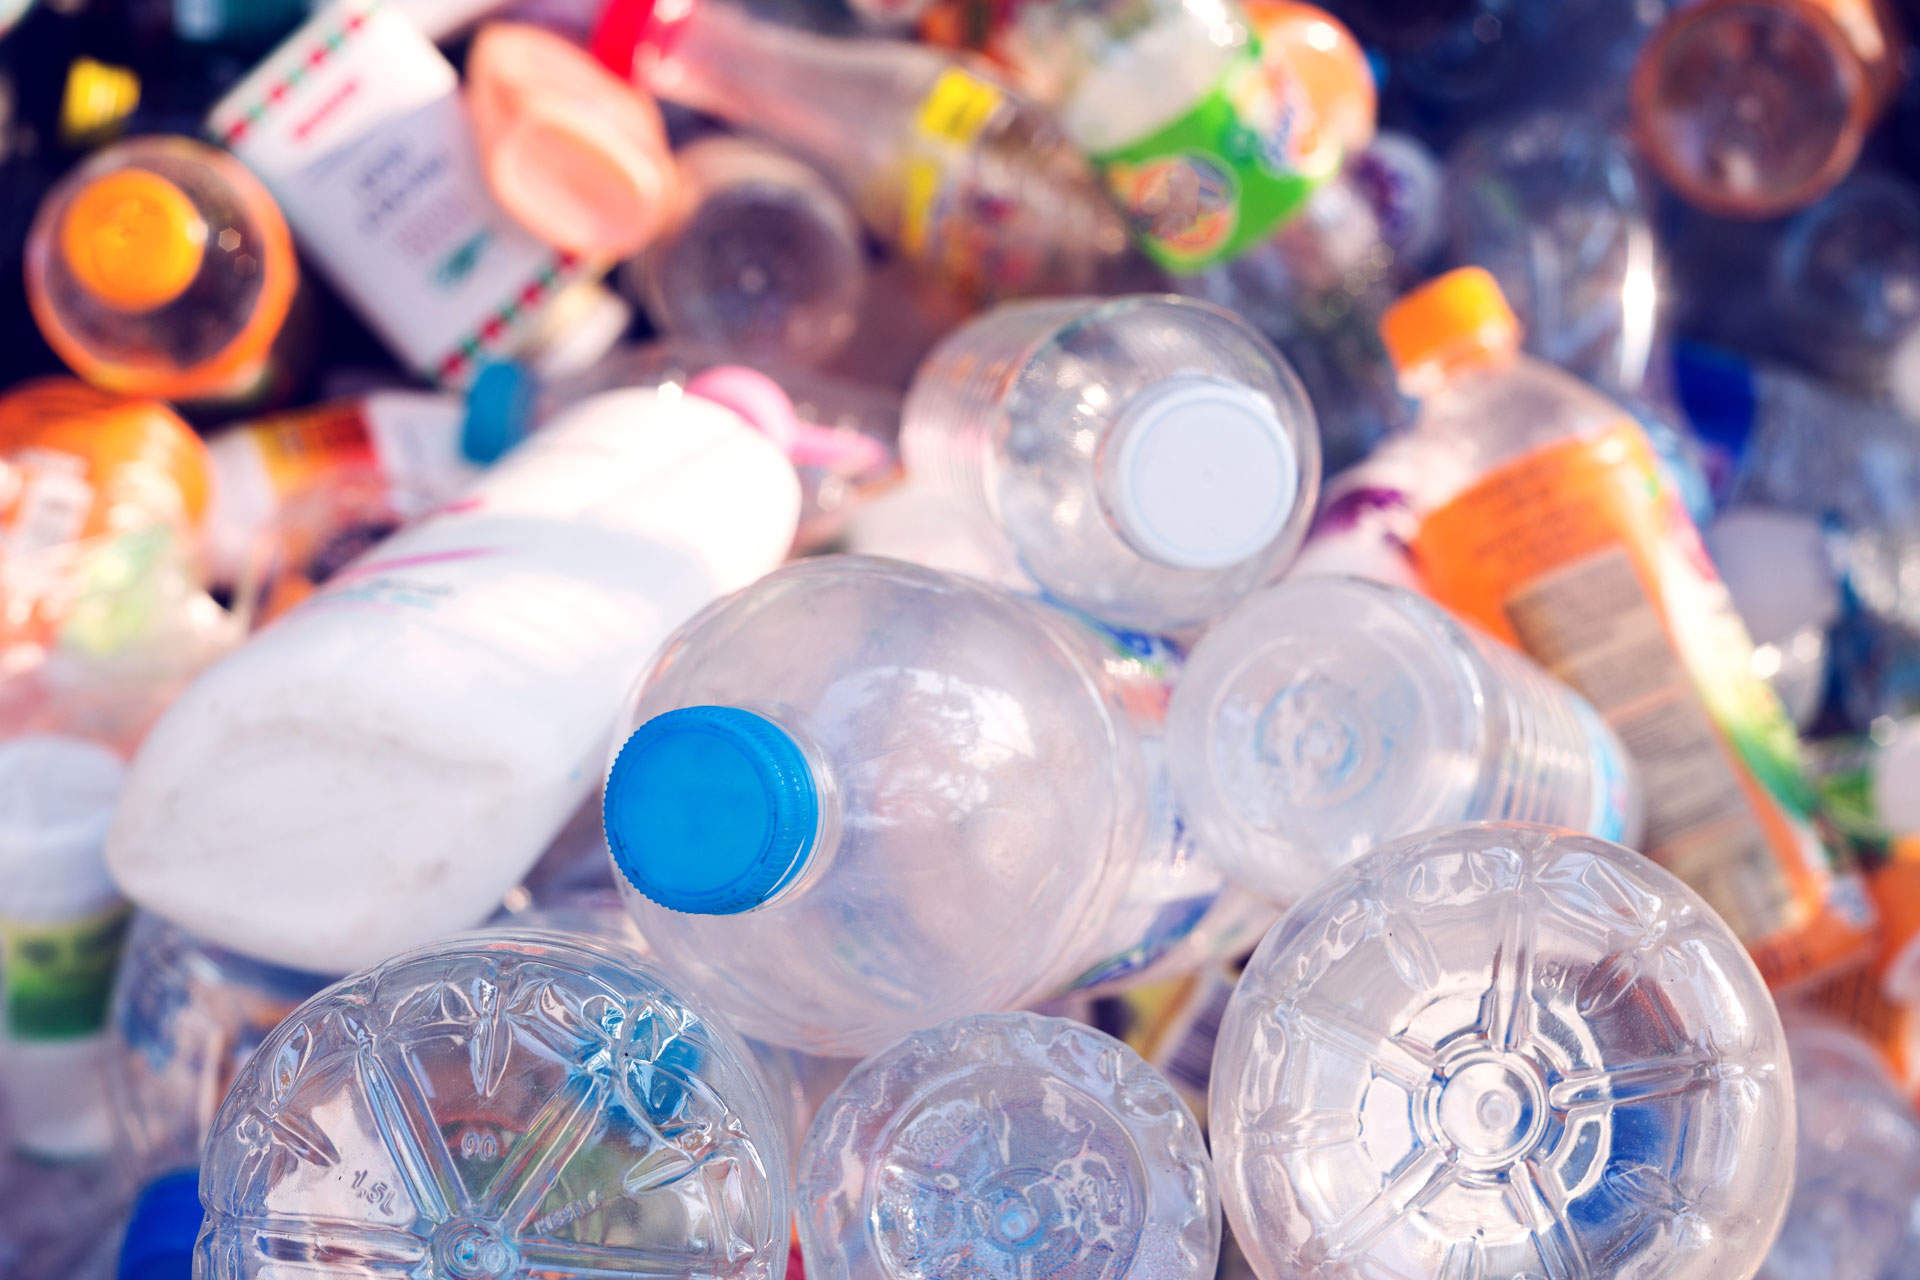 Environmental impact of plastic more severe than thought